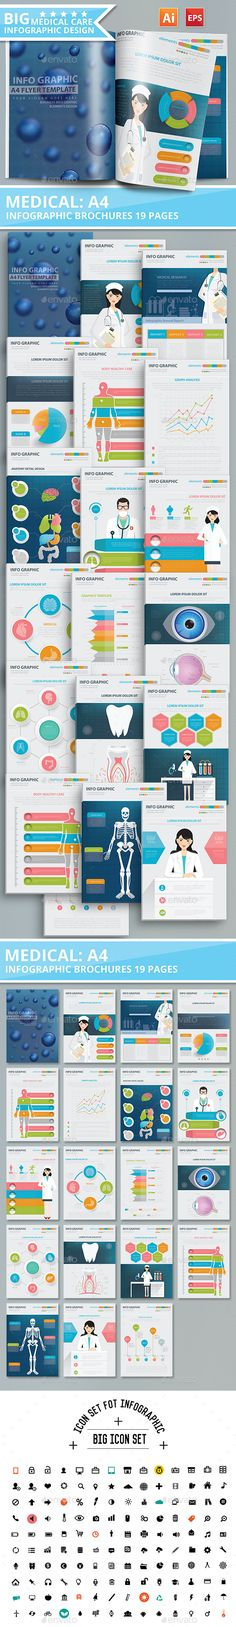 19 Page Medical and Healthy Infographic Design - Infographics